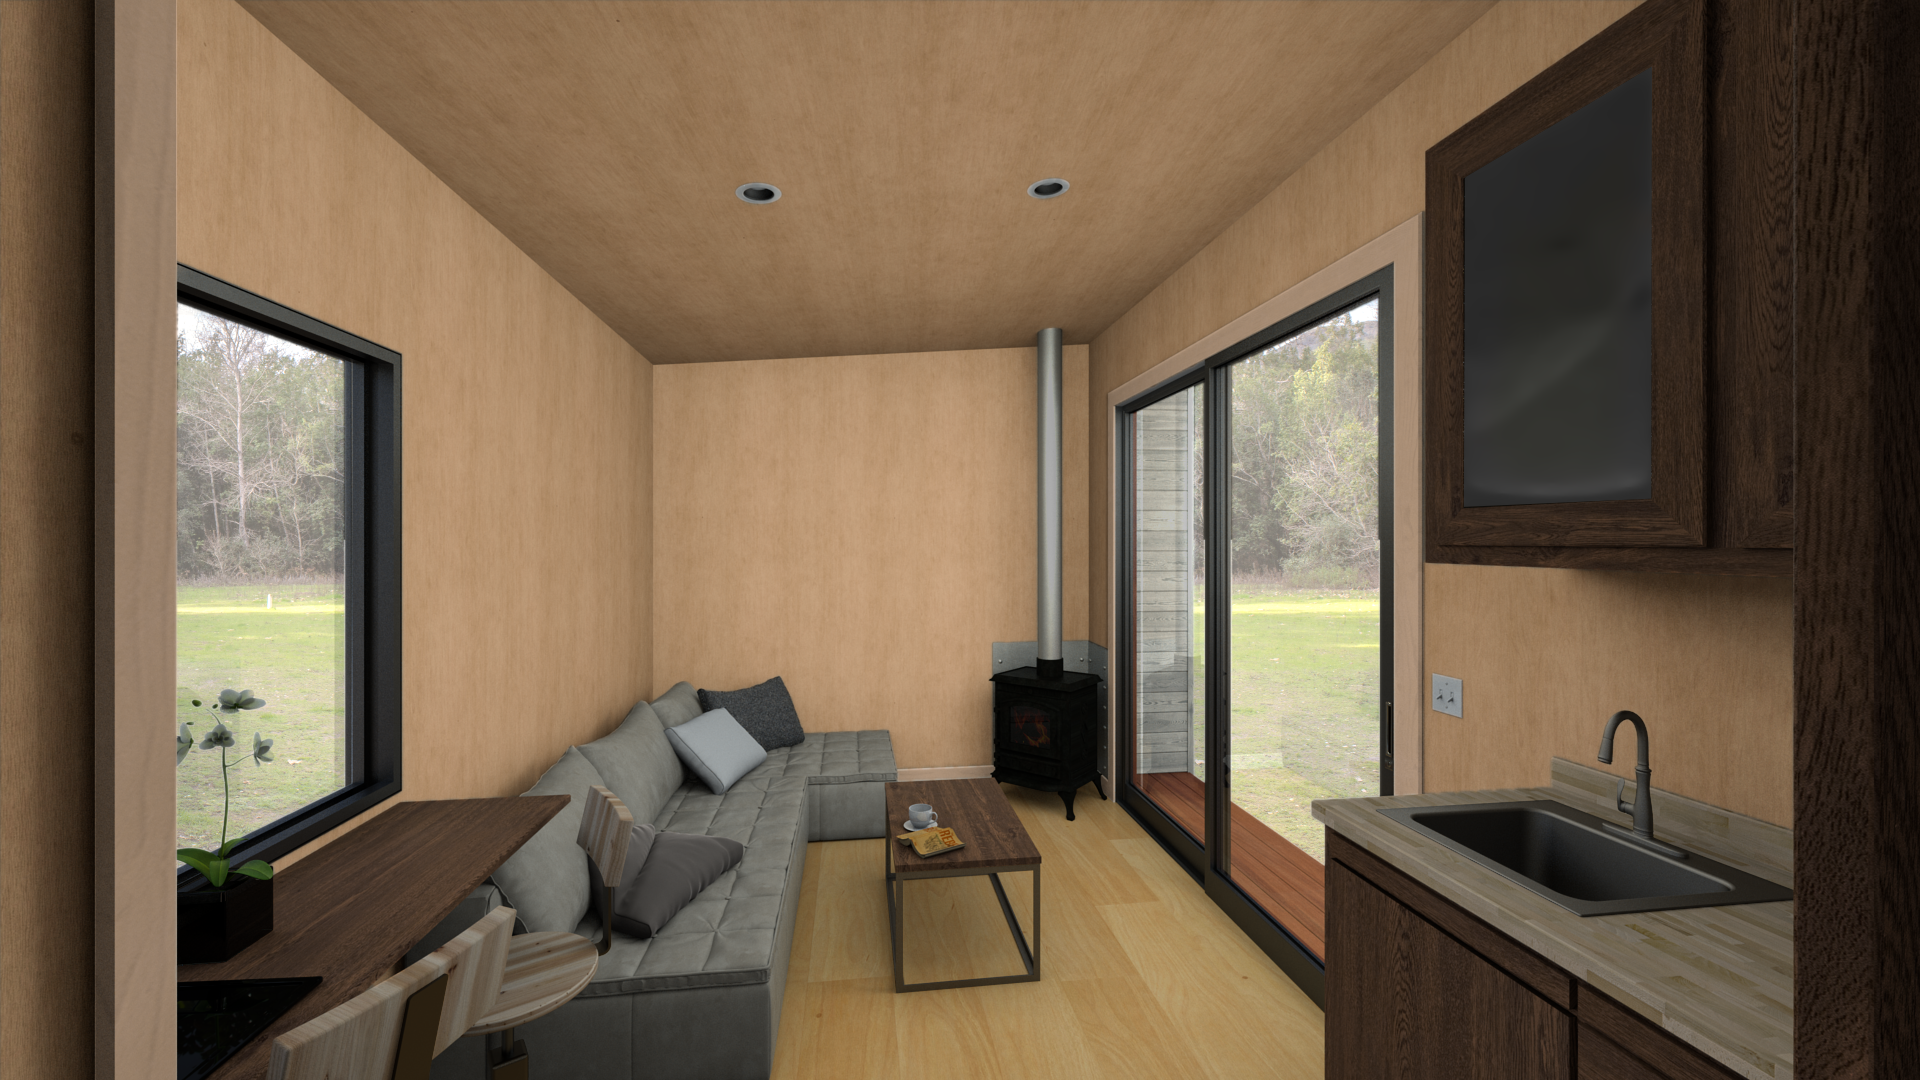 The interior is a blank canvas, shown here configured as a guest suite with the optional wood stove and kitchenette.